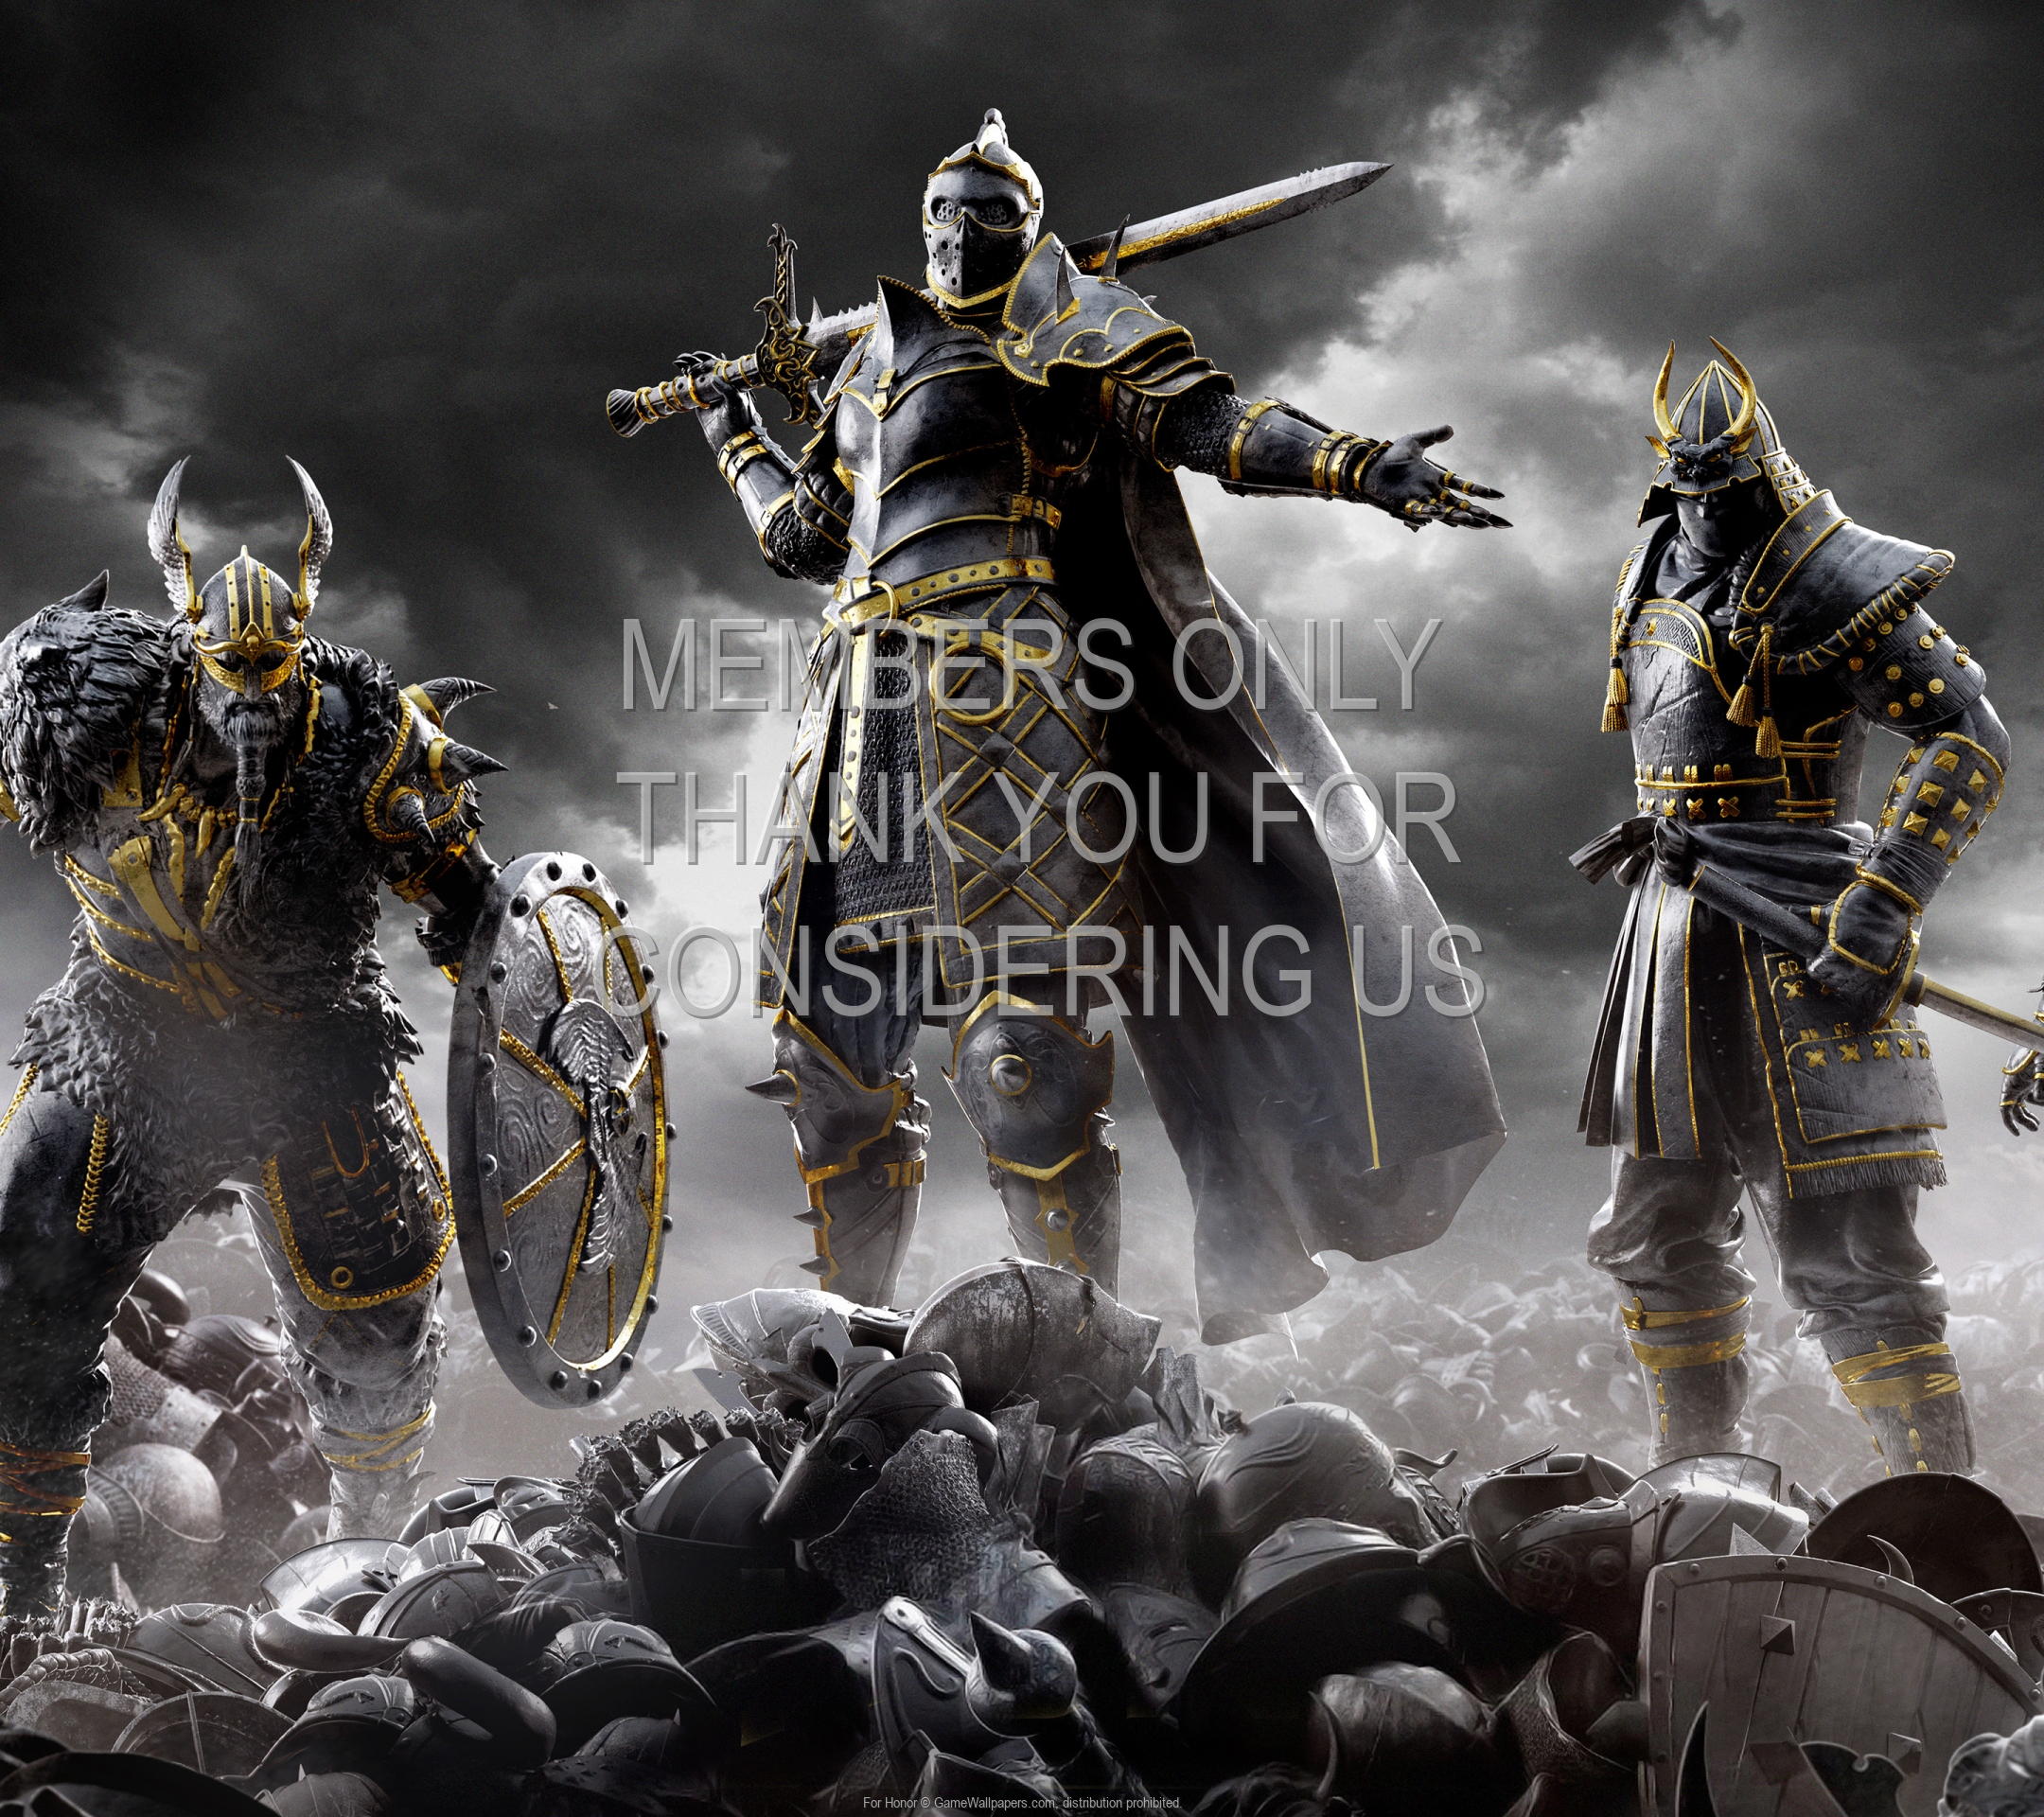 For Honor 1920x1080 Mobile wallpaper or background 12